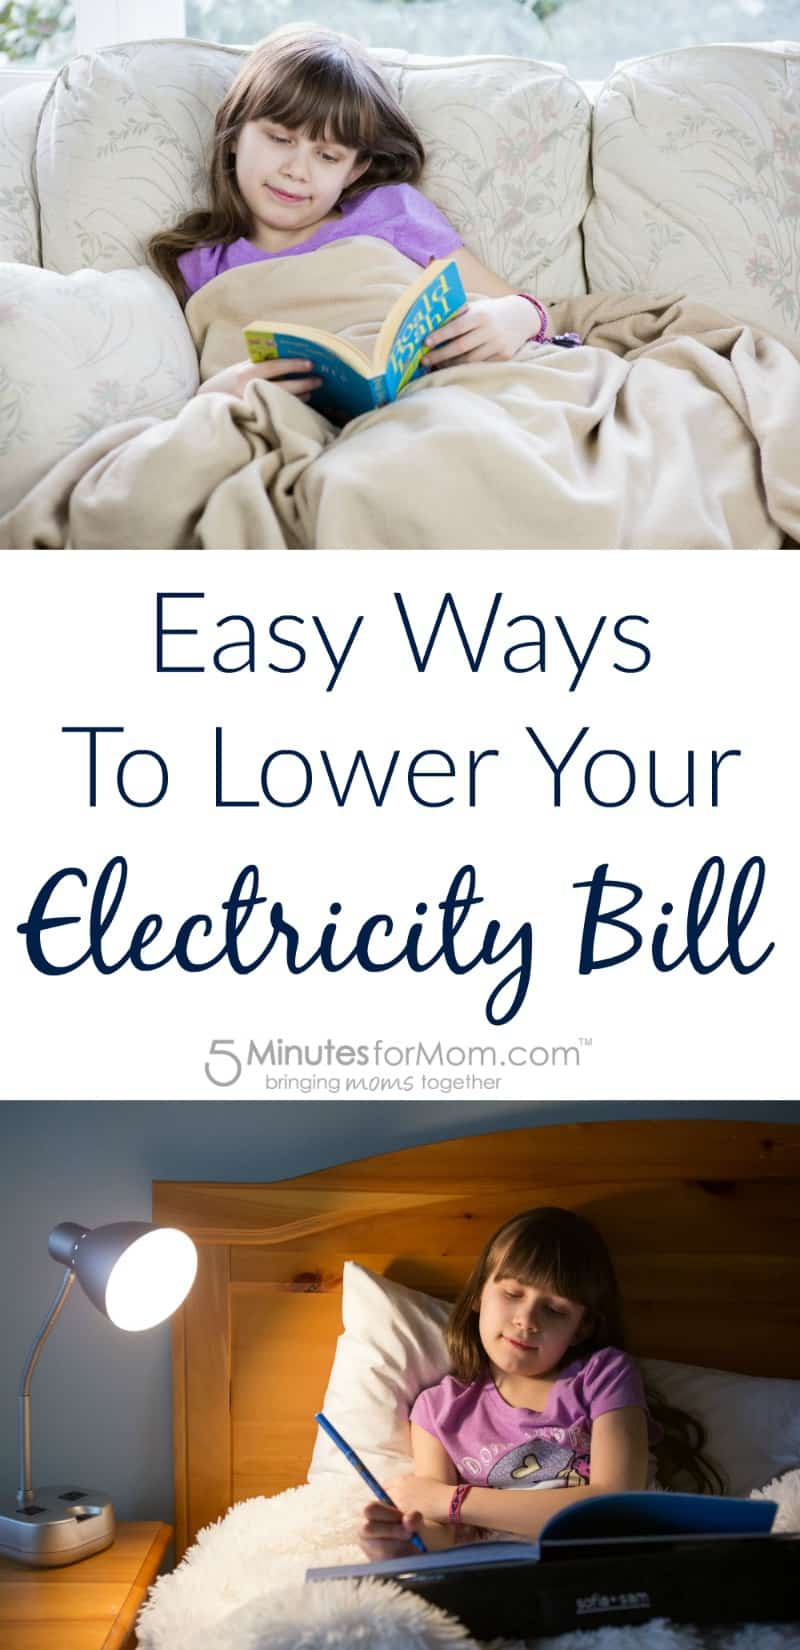 Easy Ways to Lower Your Electricity Bill